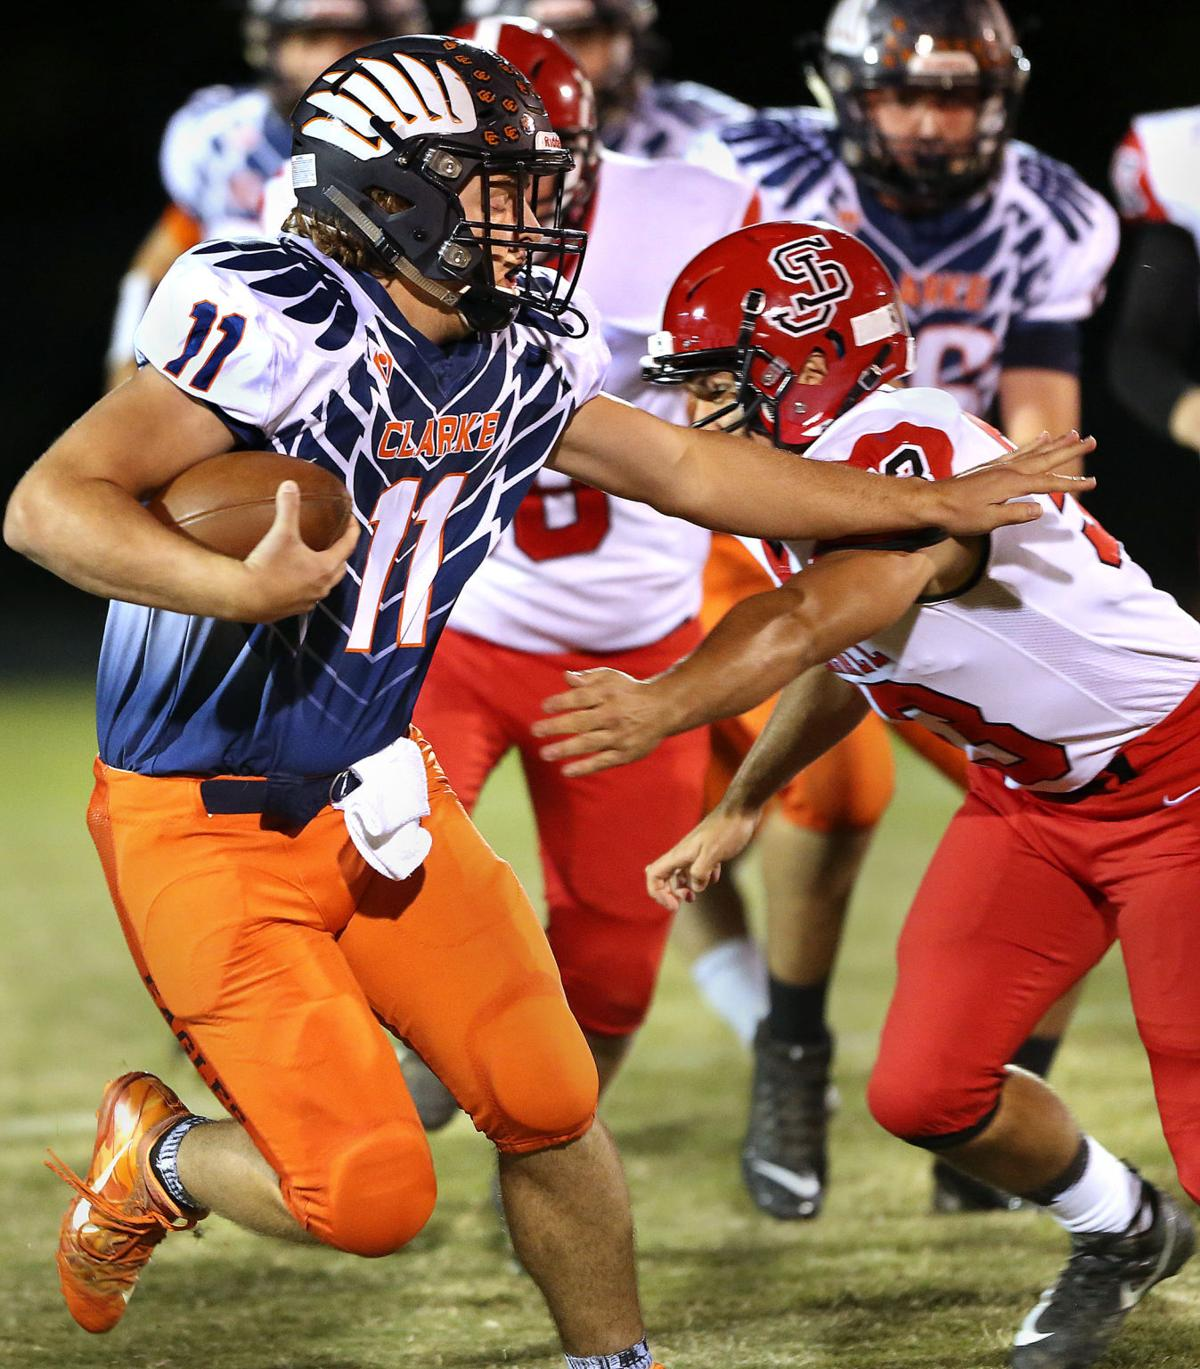 Clarke Football for schedule story